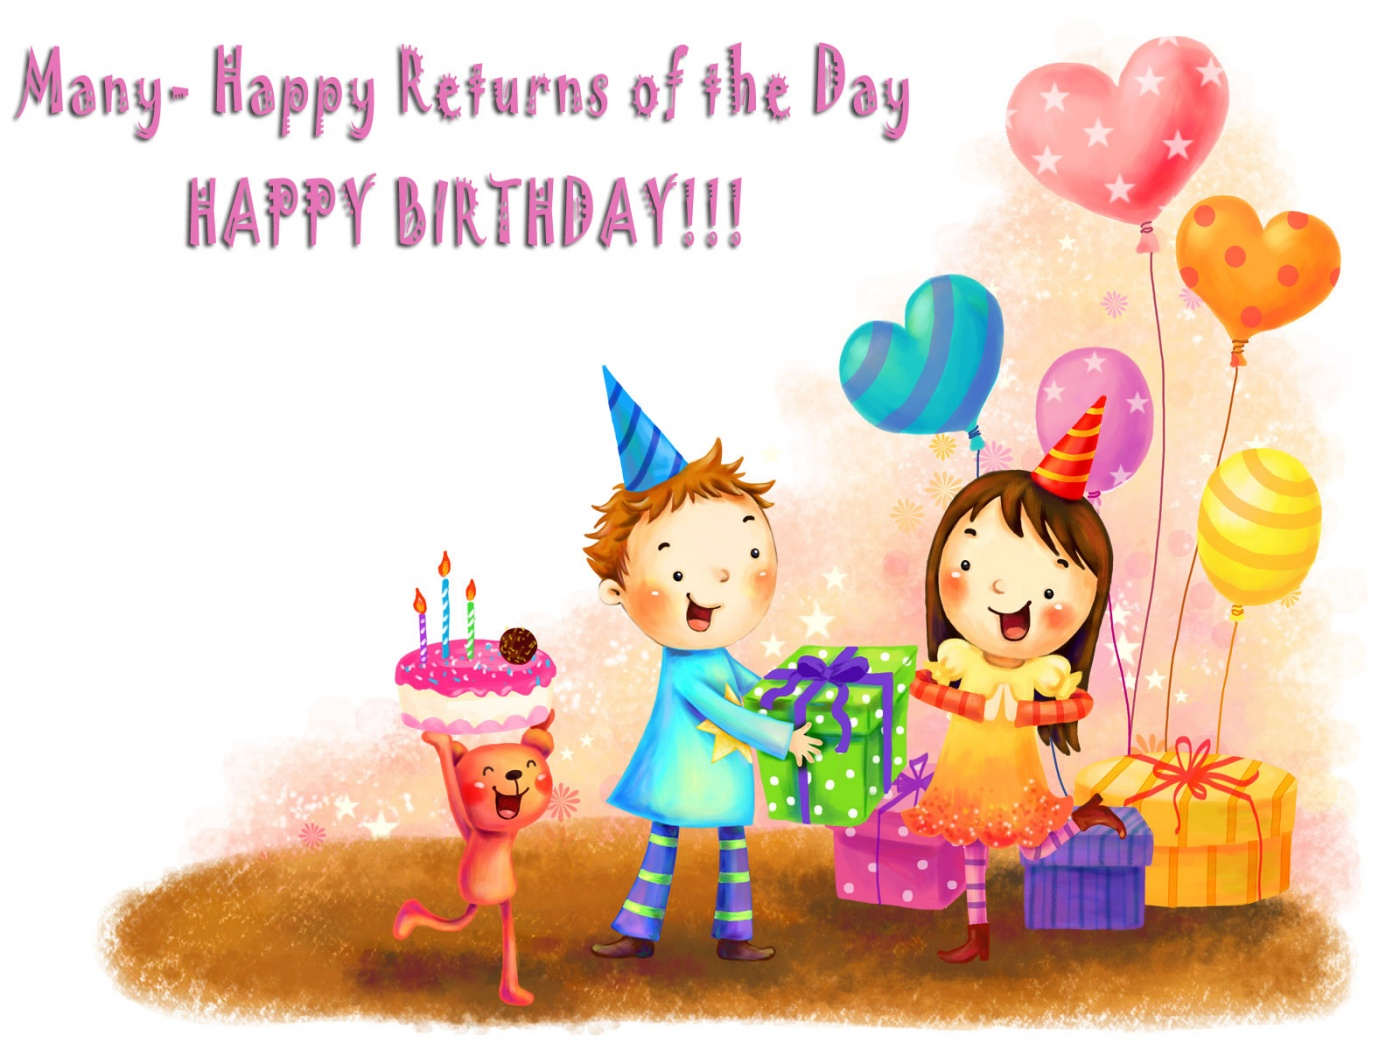 Happy Birthday With Beautiful Gifts NiceWishes – Greetings for the Birthday